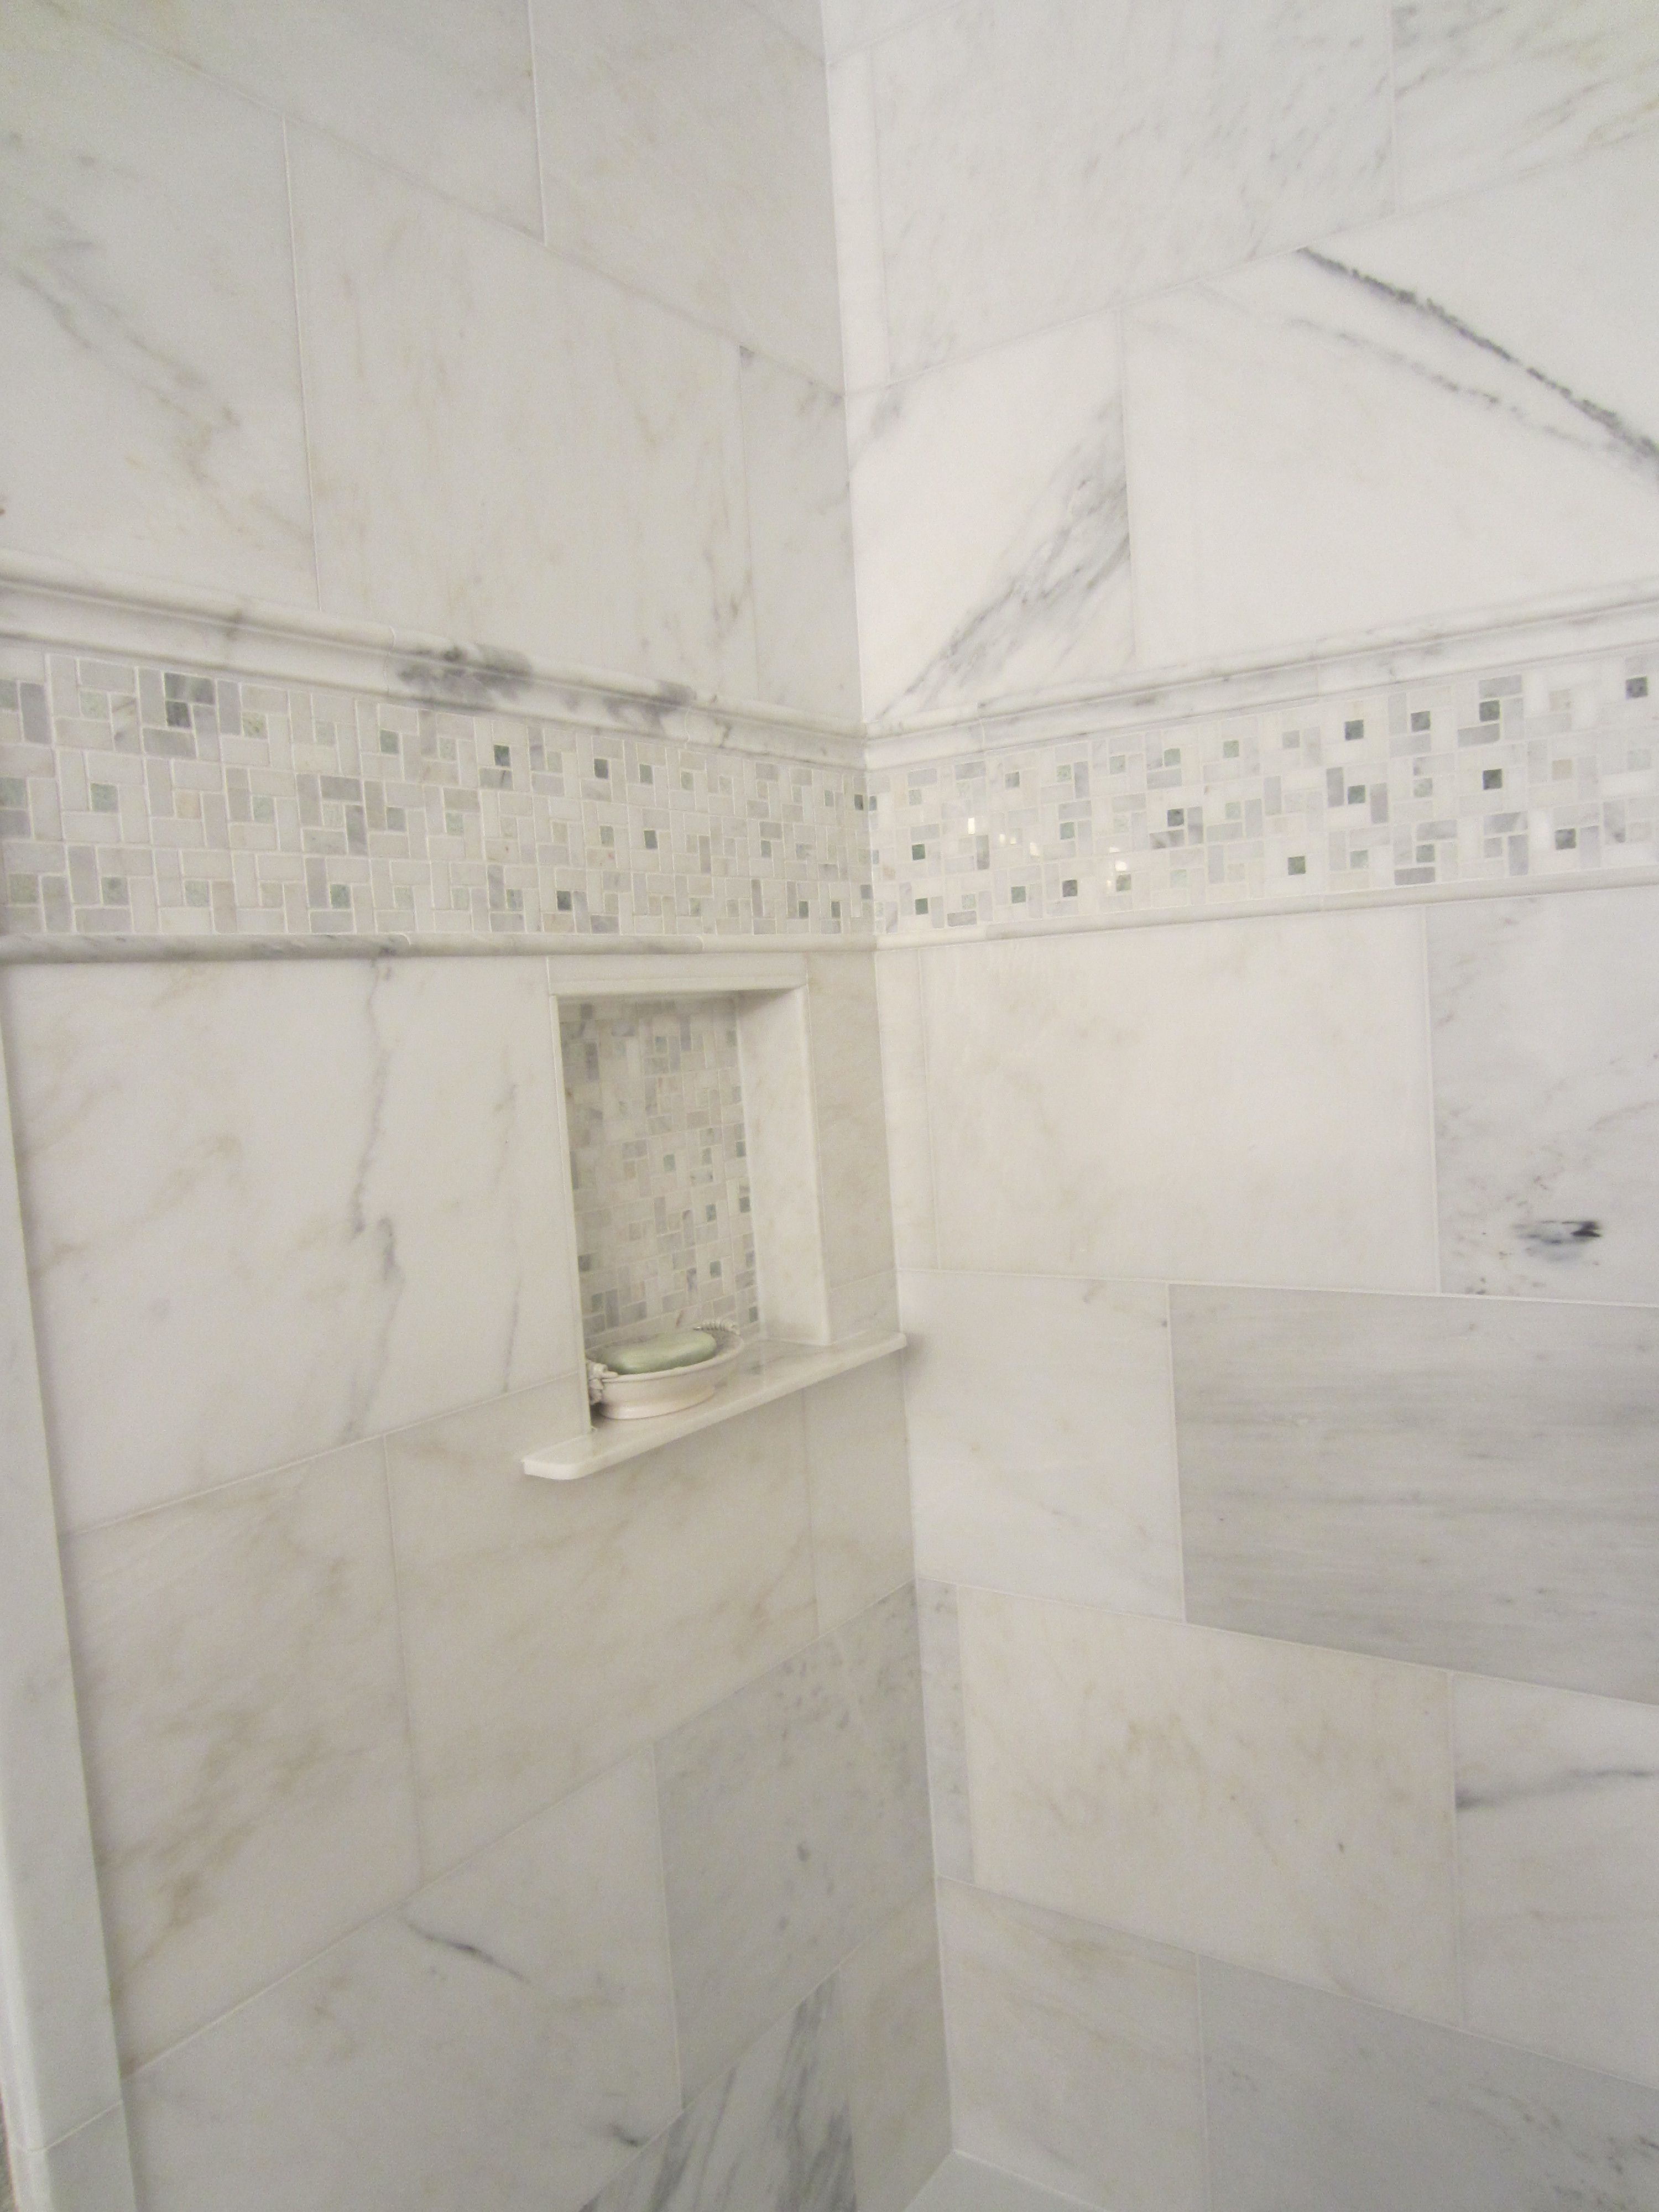 Decorative Accent Tiles For Bathroom Entrancing Carrara Mable Tiles With Decorative Accent And Builtin Niche Design Ideas